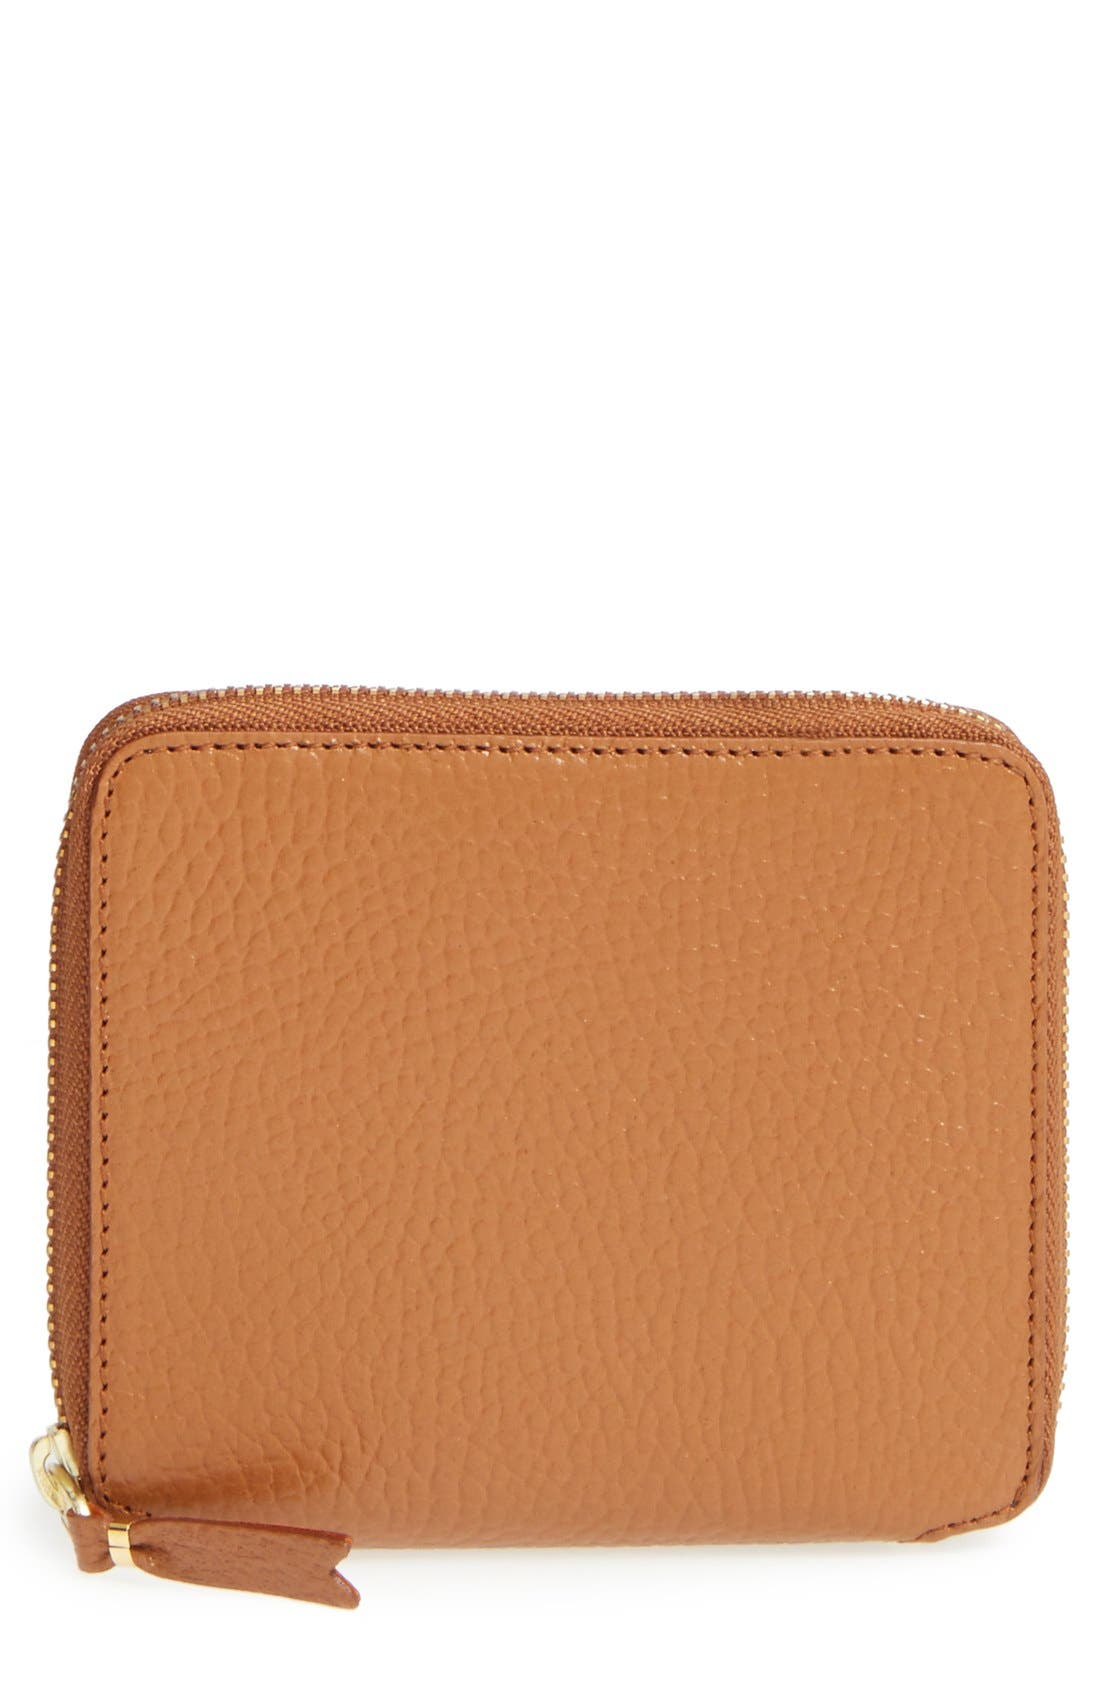 Leather Wallet,                         Main,                         color, Brown/ Orange